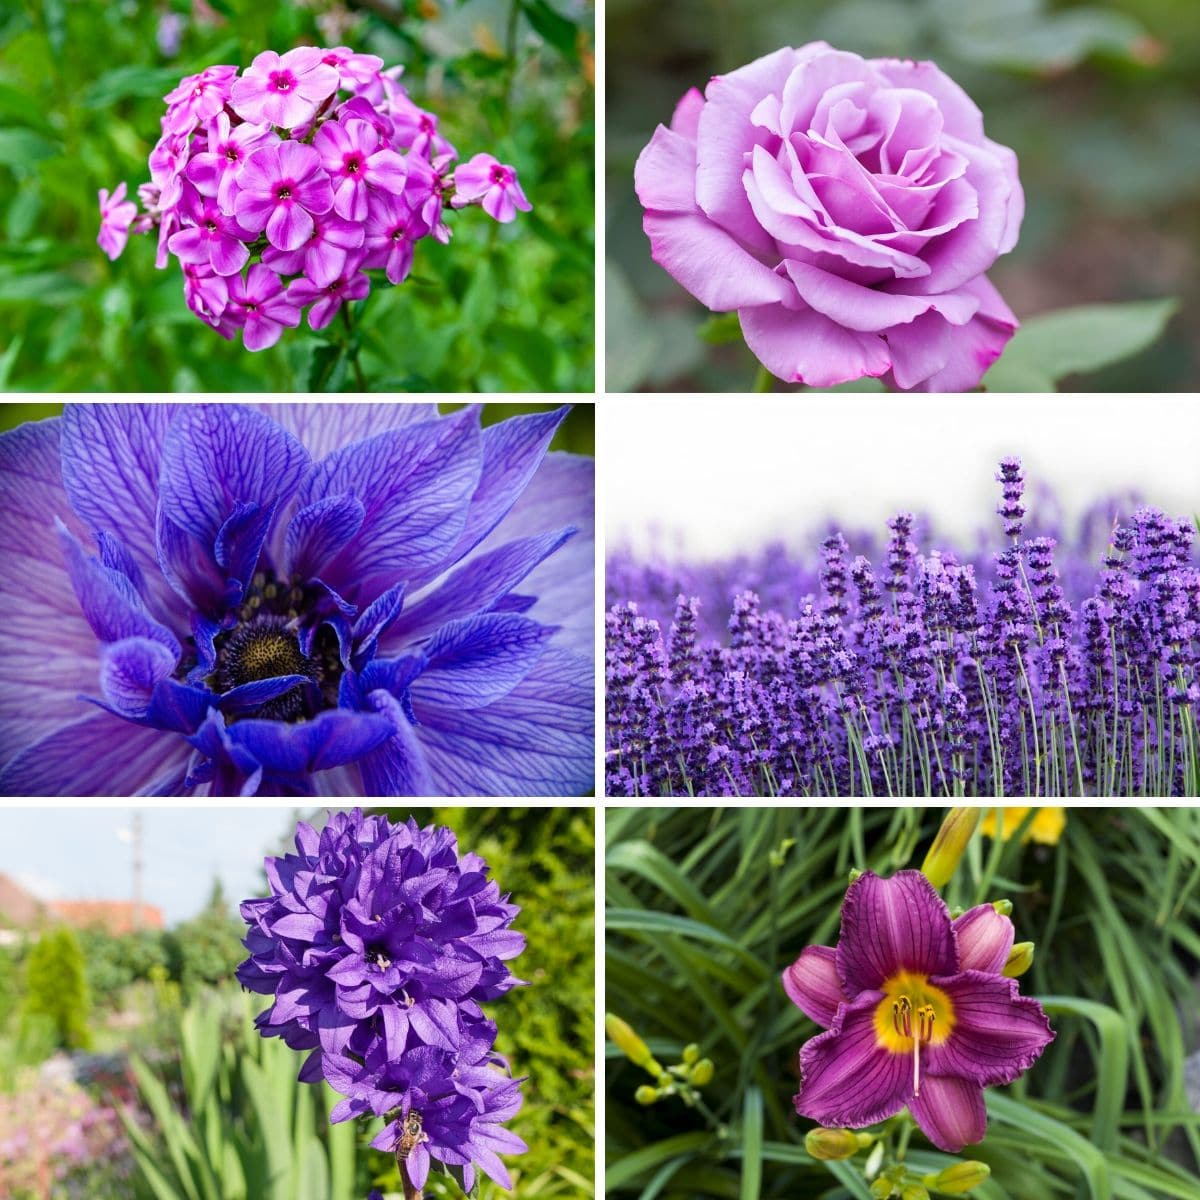 Photo collage featuring various purple perennials from the post.